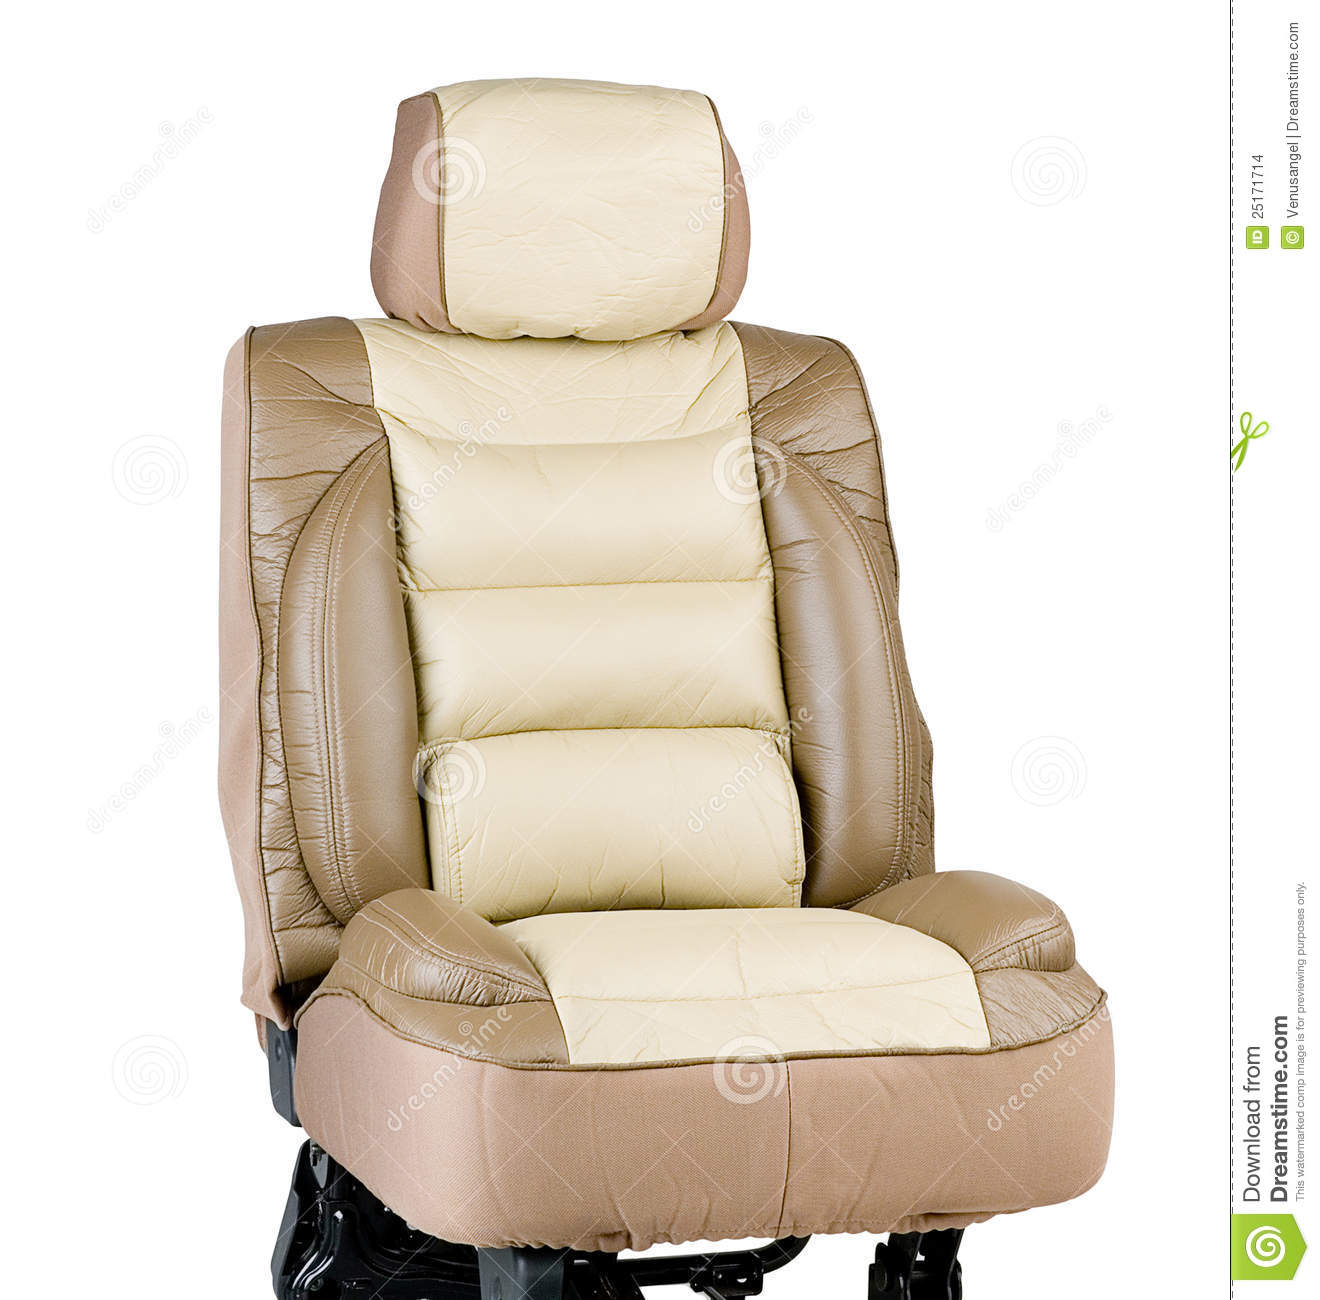 cover chair seat car crayola table and chairs leather stock photo image of frontal